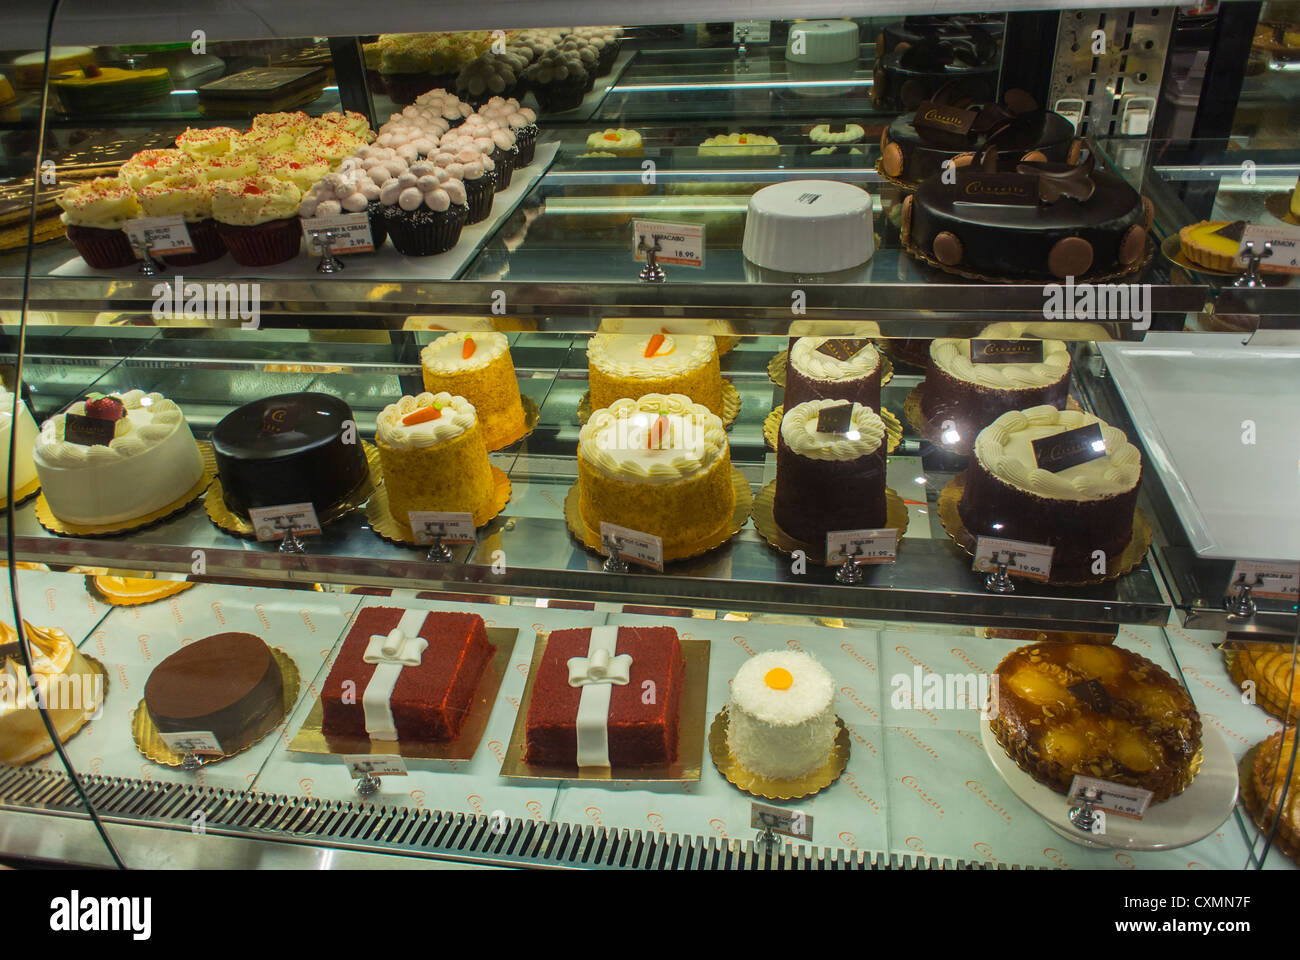 City Cakes Bakery